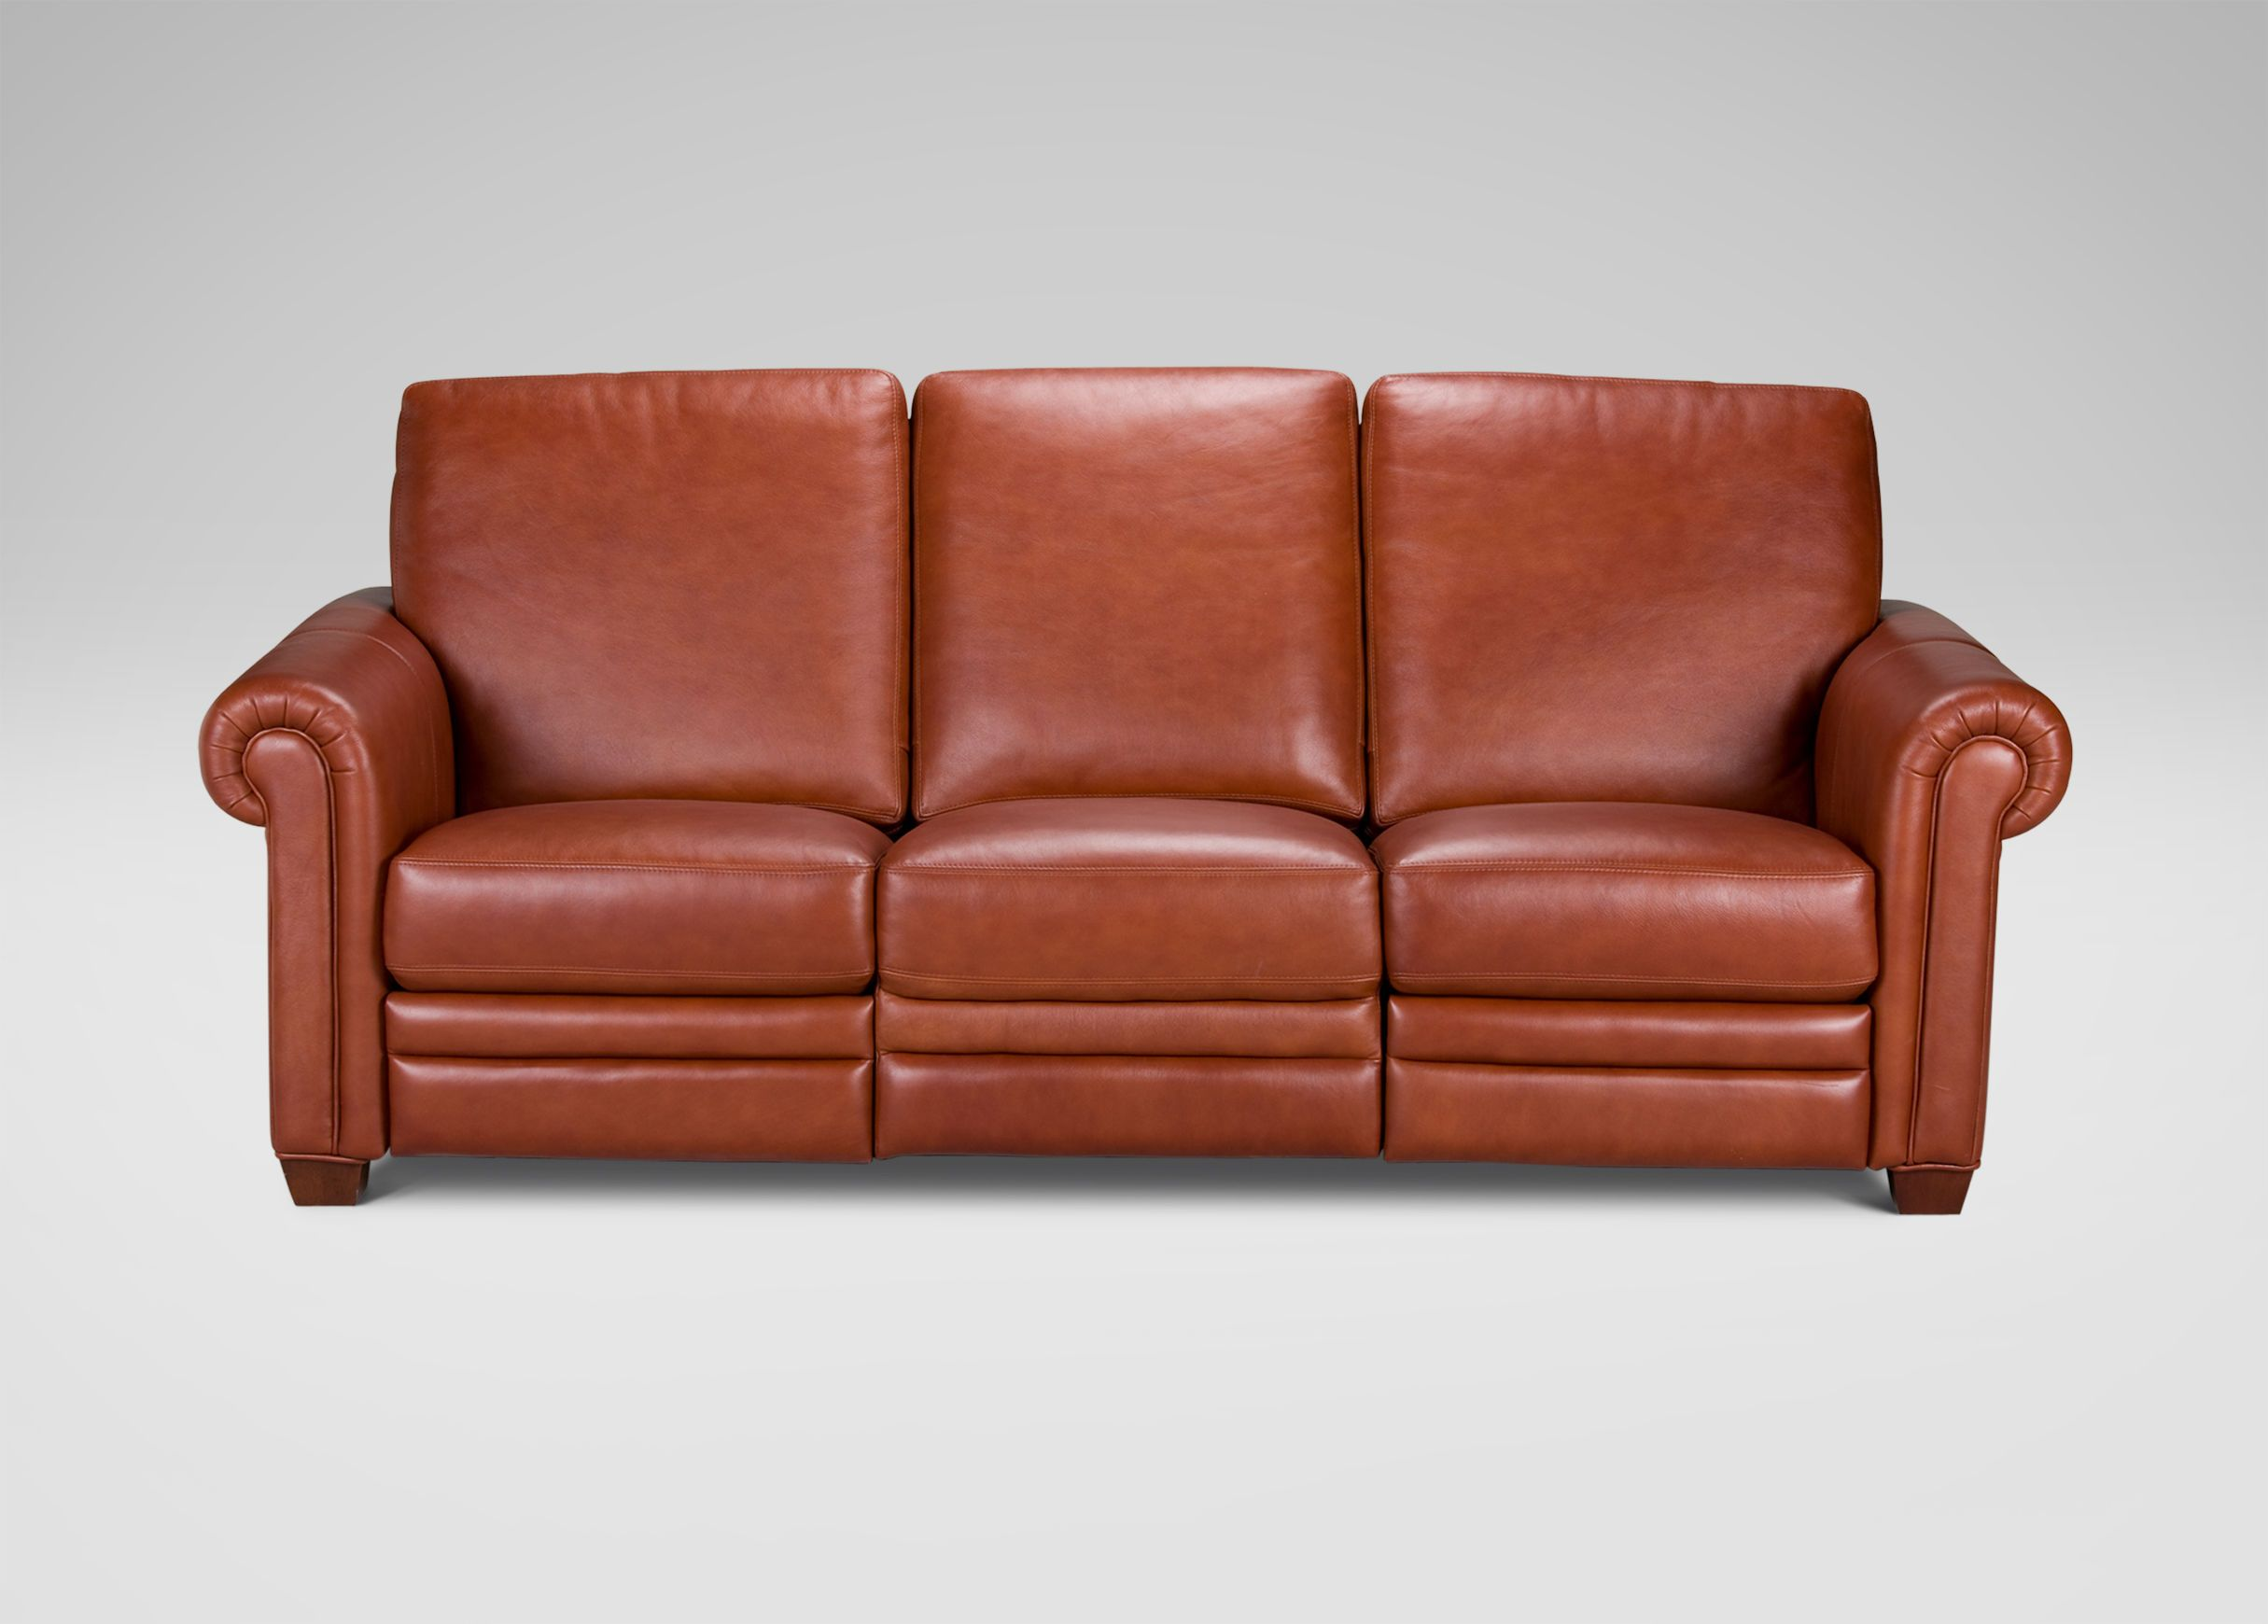 Conor Leather Incliner Love Seat Living Room Sofa Sofa Offers